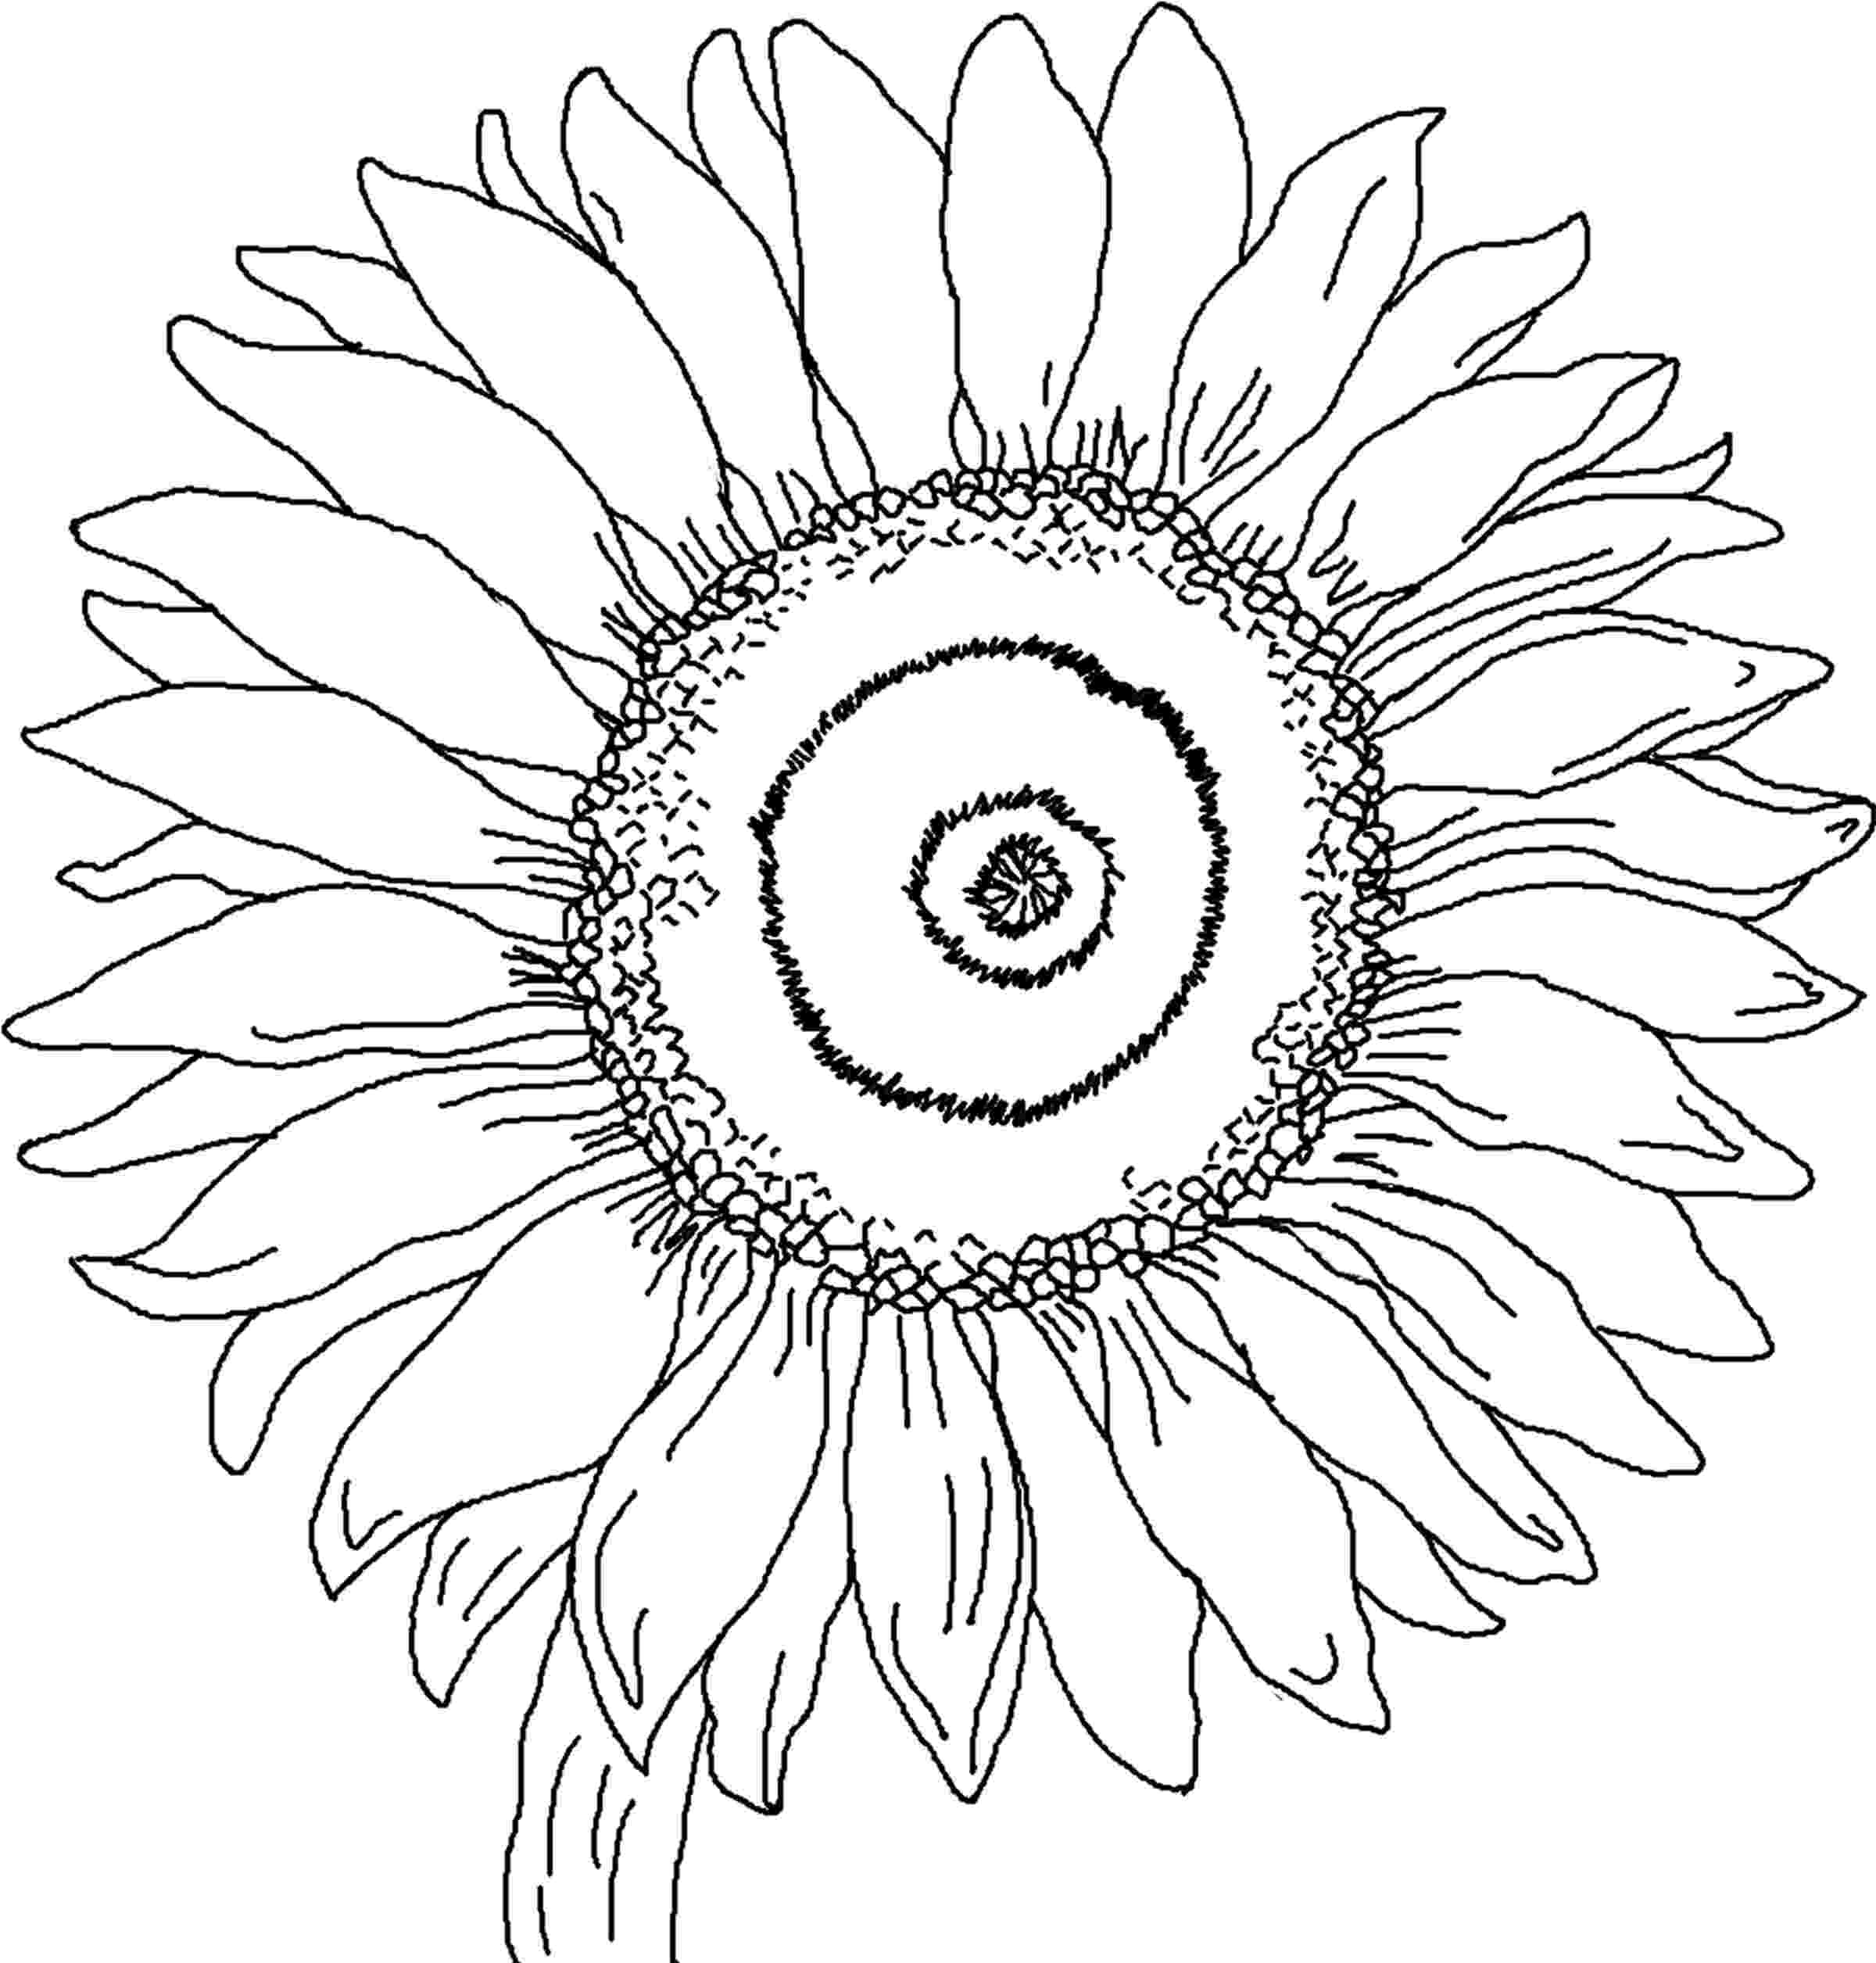 printable sunflower pictures to color printable sunflower az coloring pages to printable sunflower color pictures